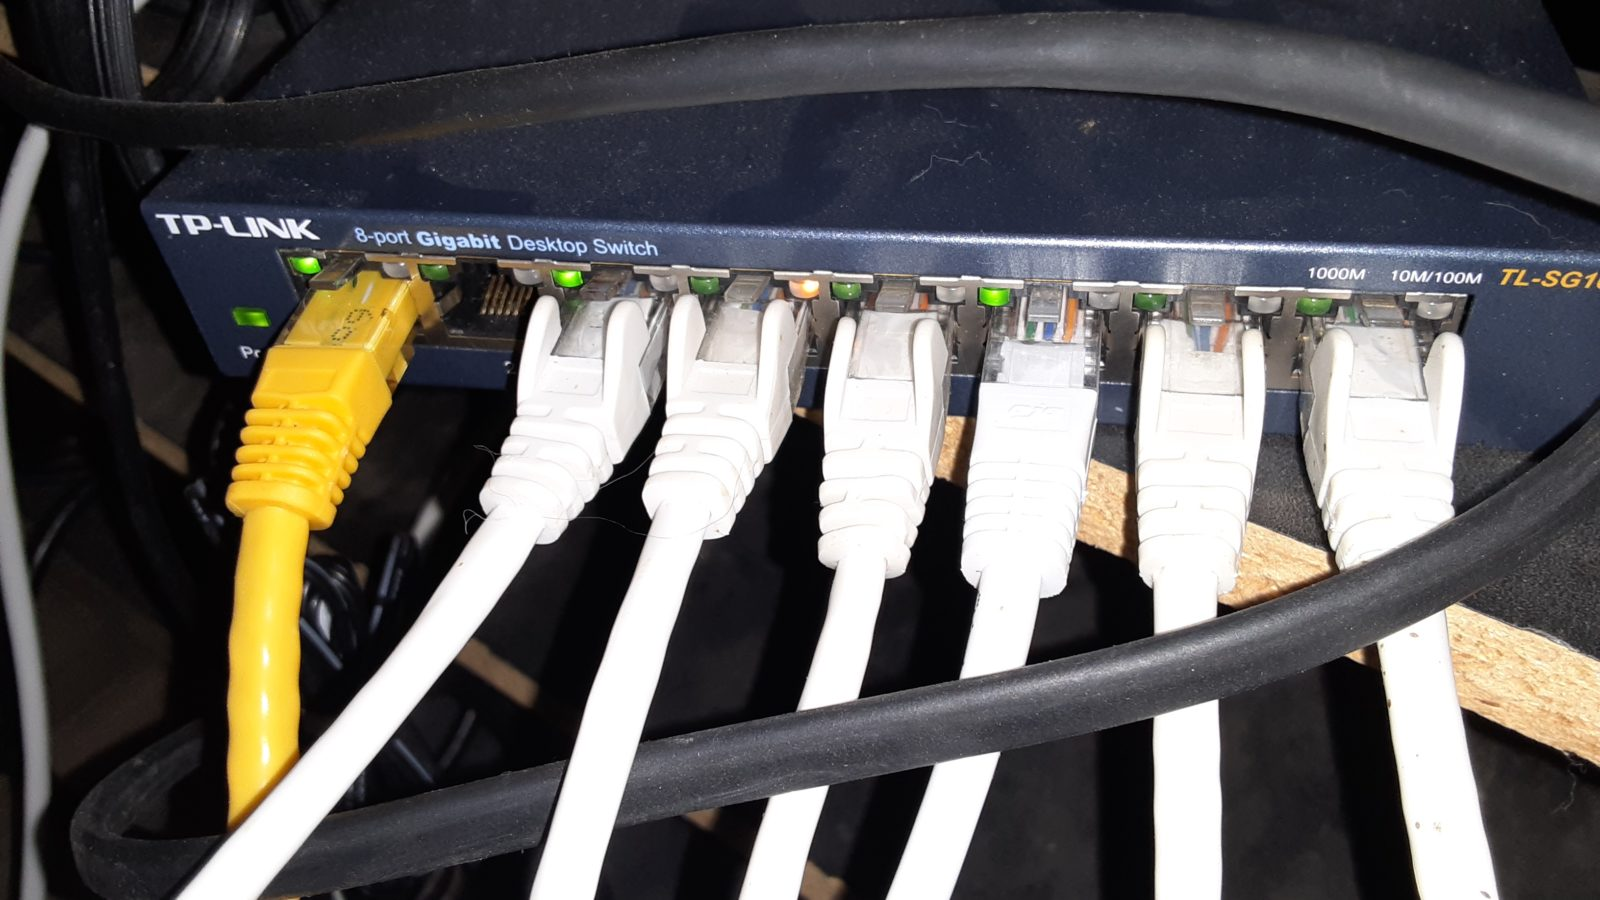 Full network switch